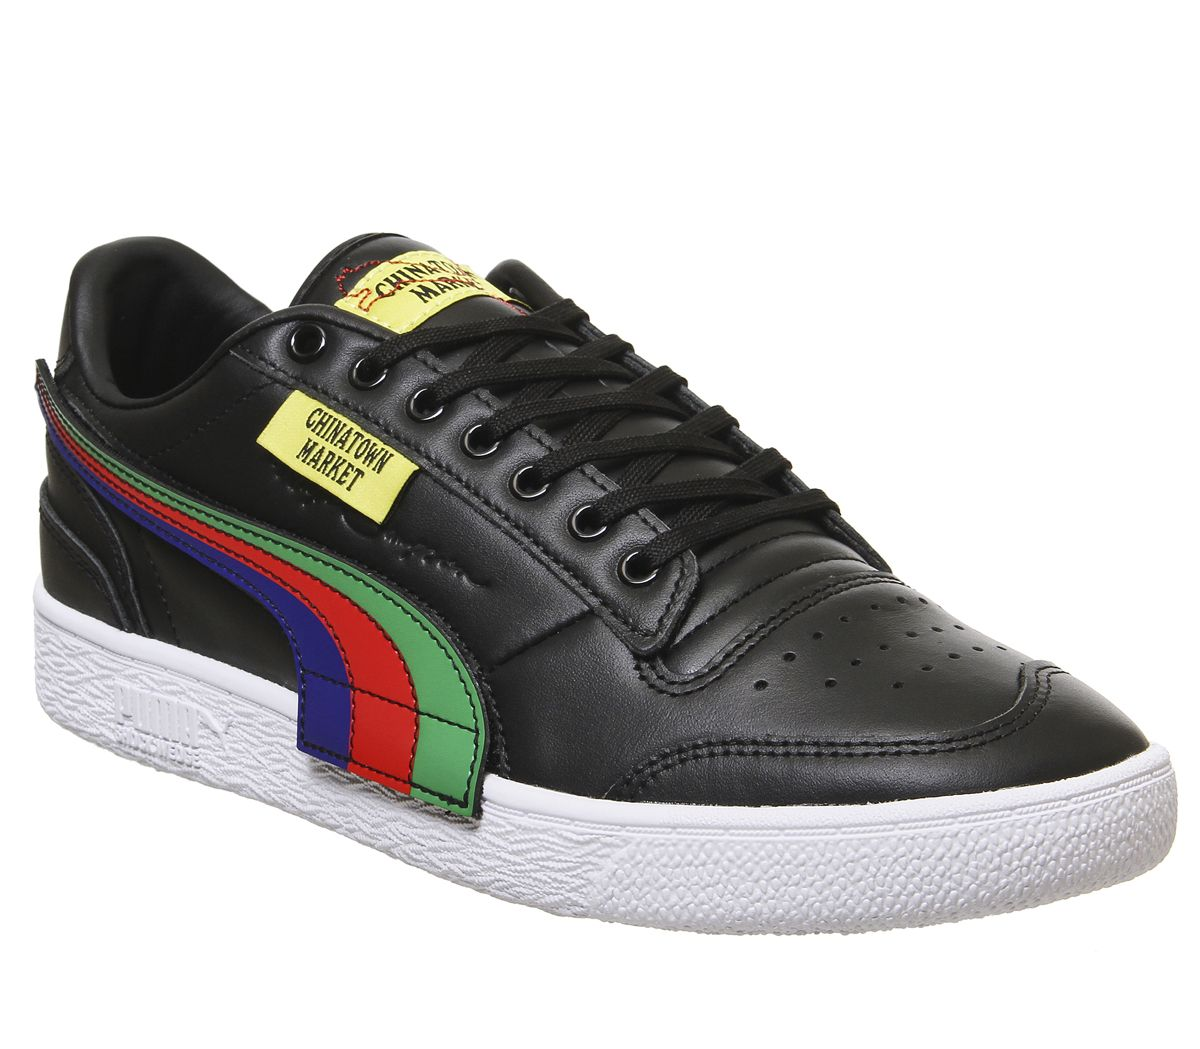 better best shades of Hommes puma Ralph Sampson Lo Chinatown Marché Baskets puma Noir ...